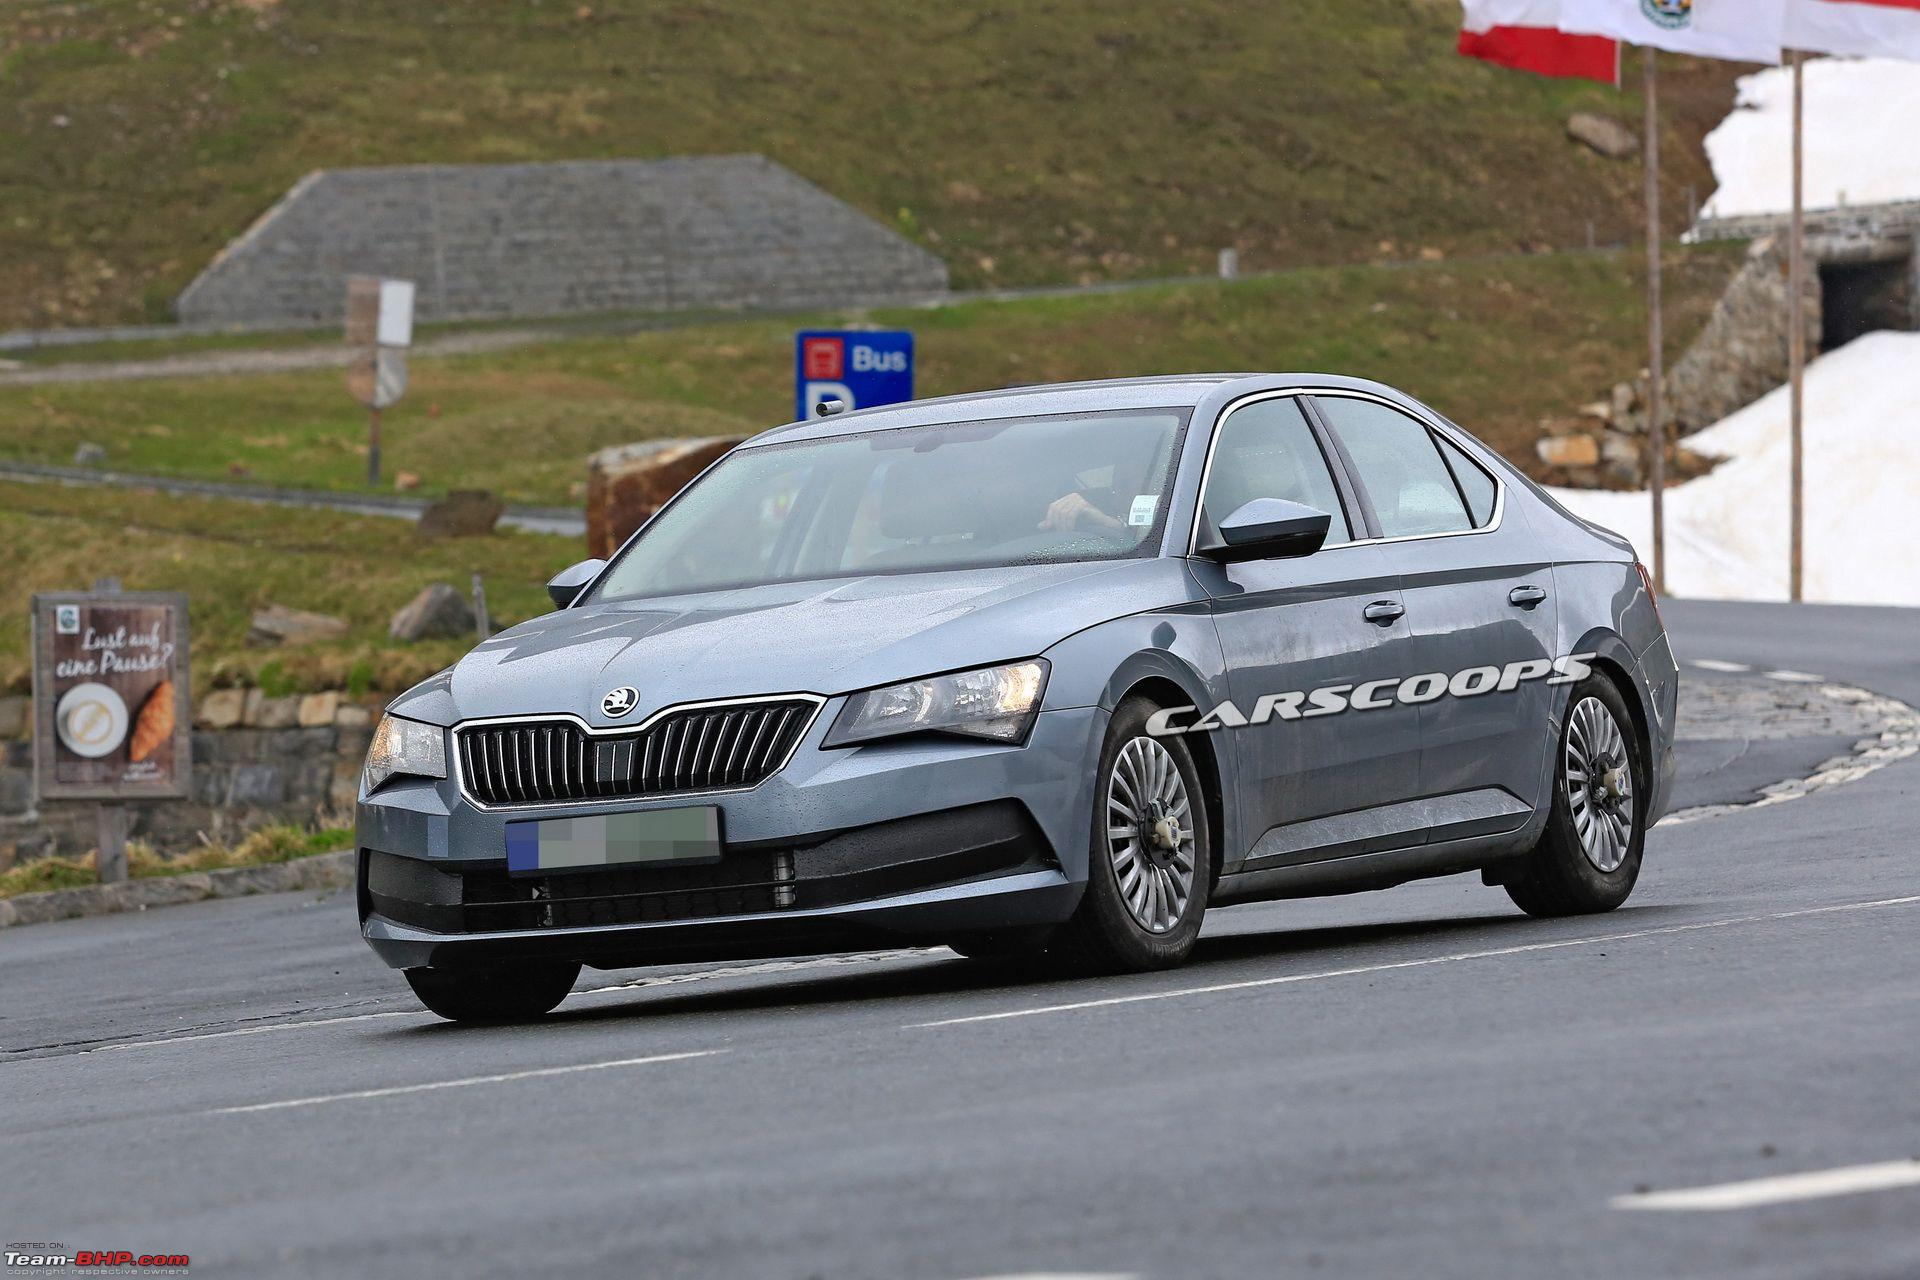 81 All New Spy Shots Skoda Superb Price and Release date